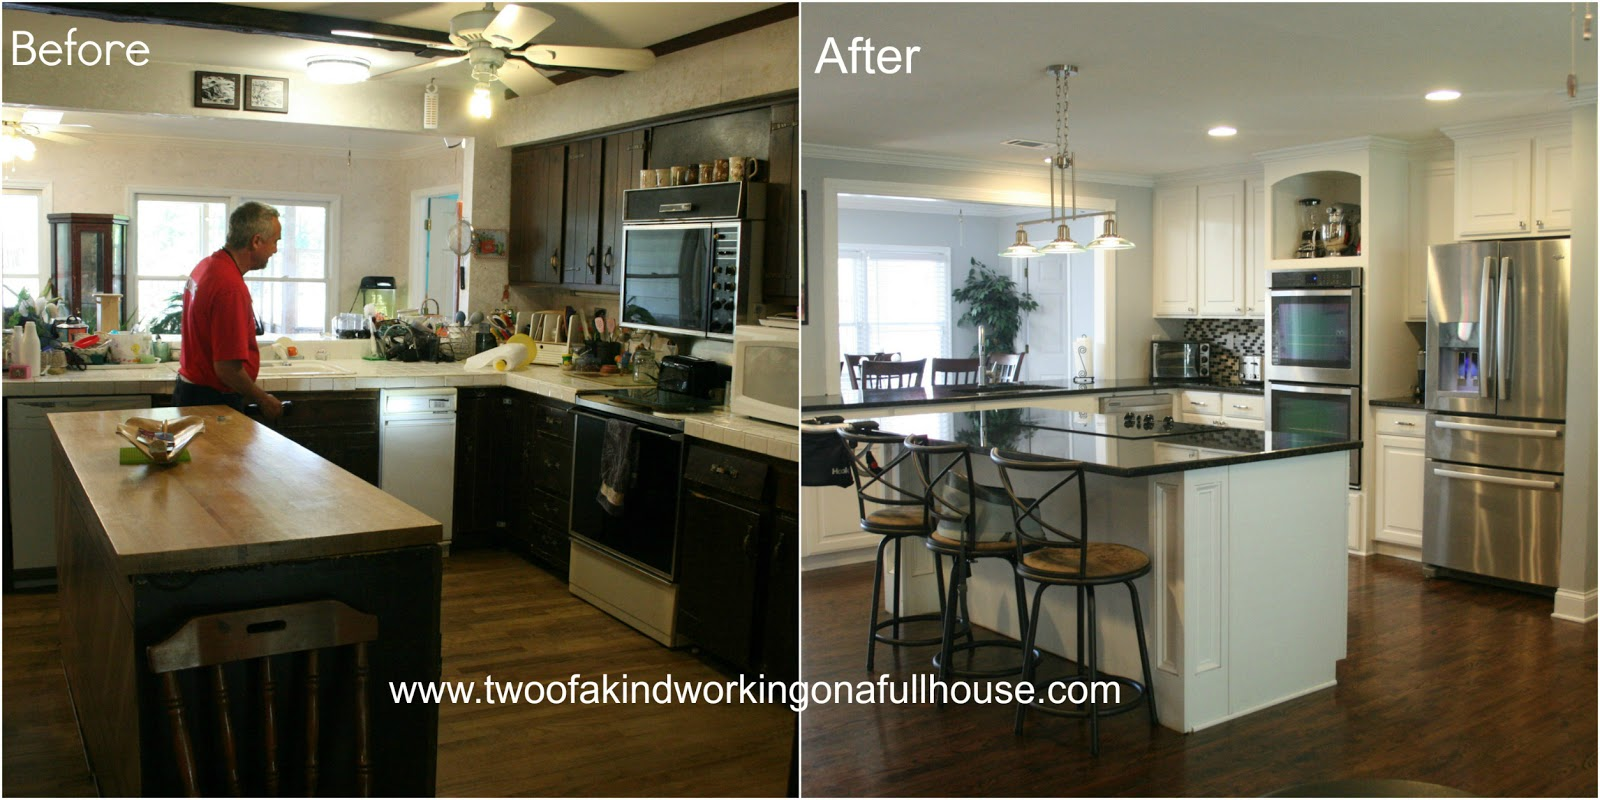 Awe Inspiring Wordless Wednesday Before After Kitchen Remodel Pictures Two Largest Home Design Picture Inspirations Pitcheantrous